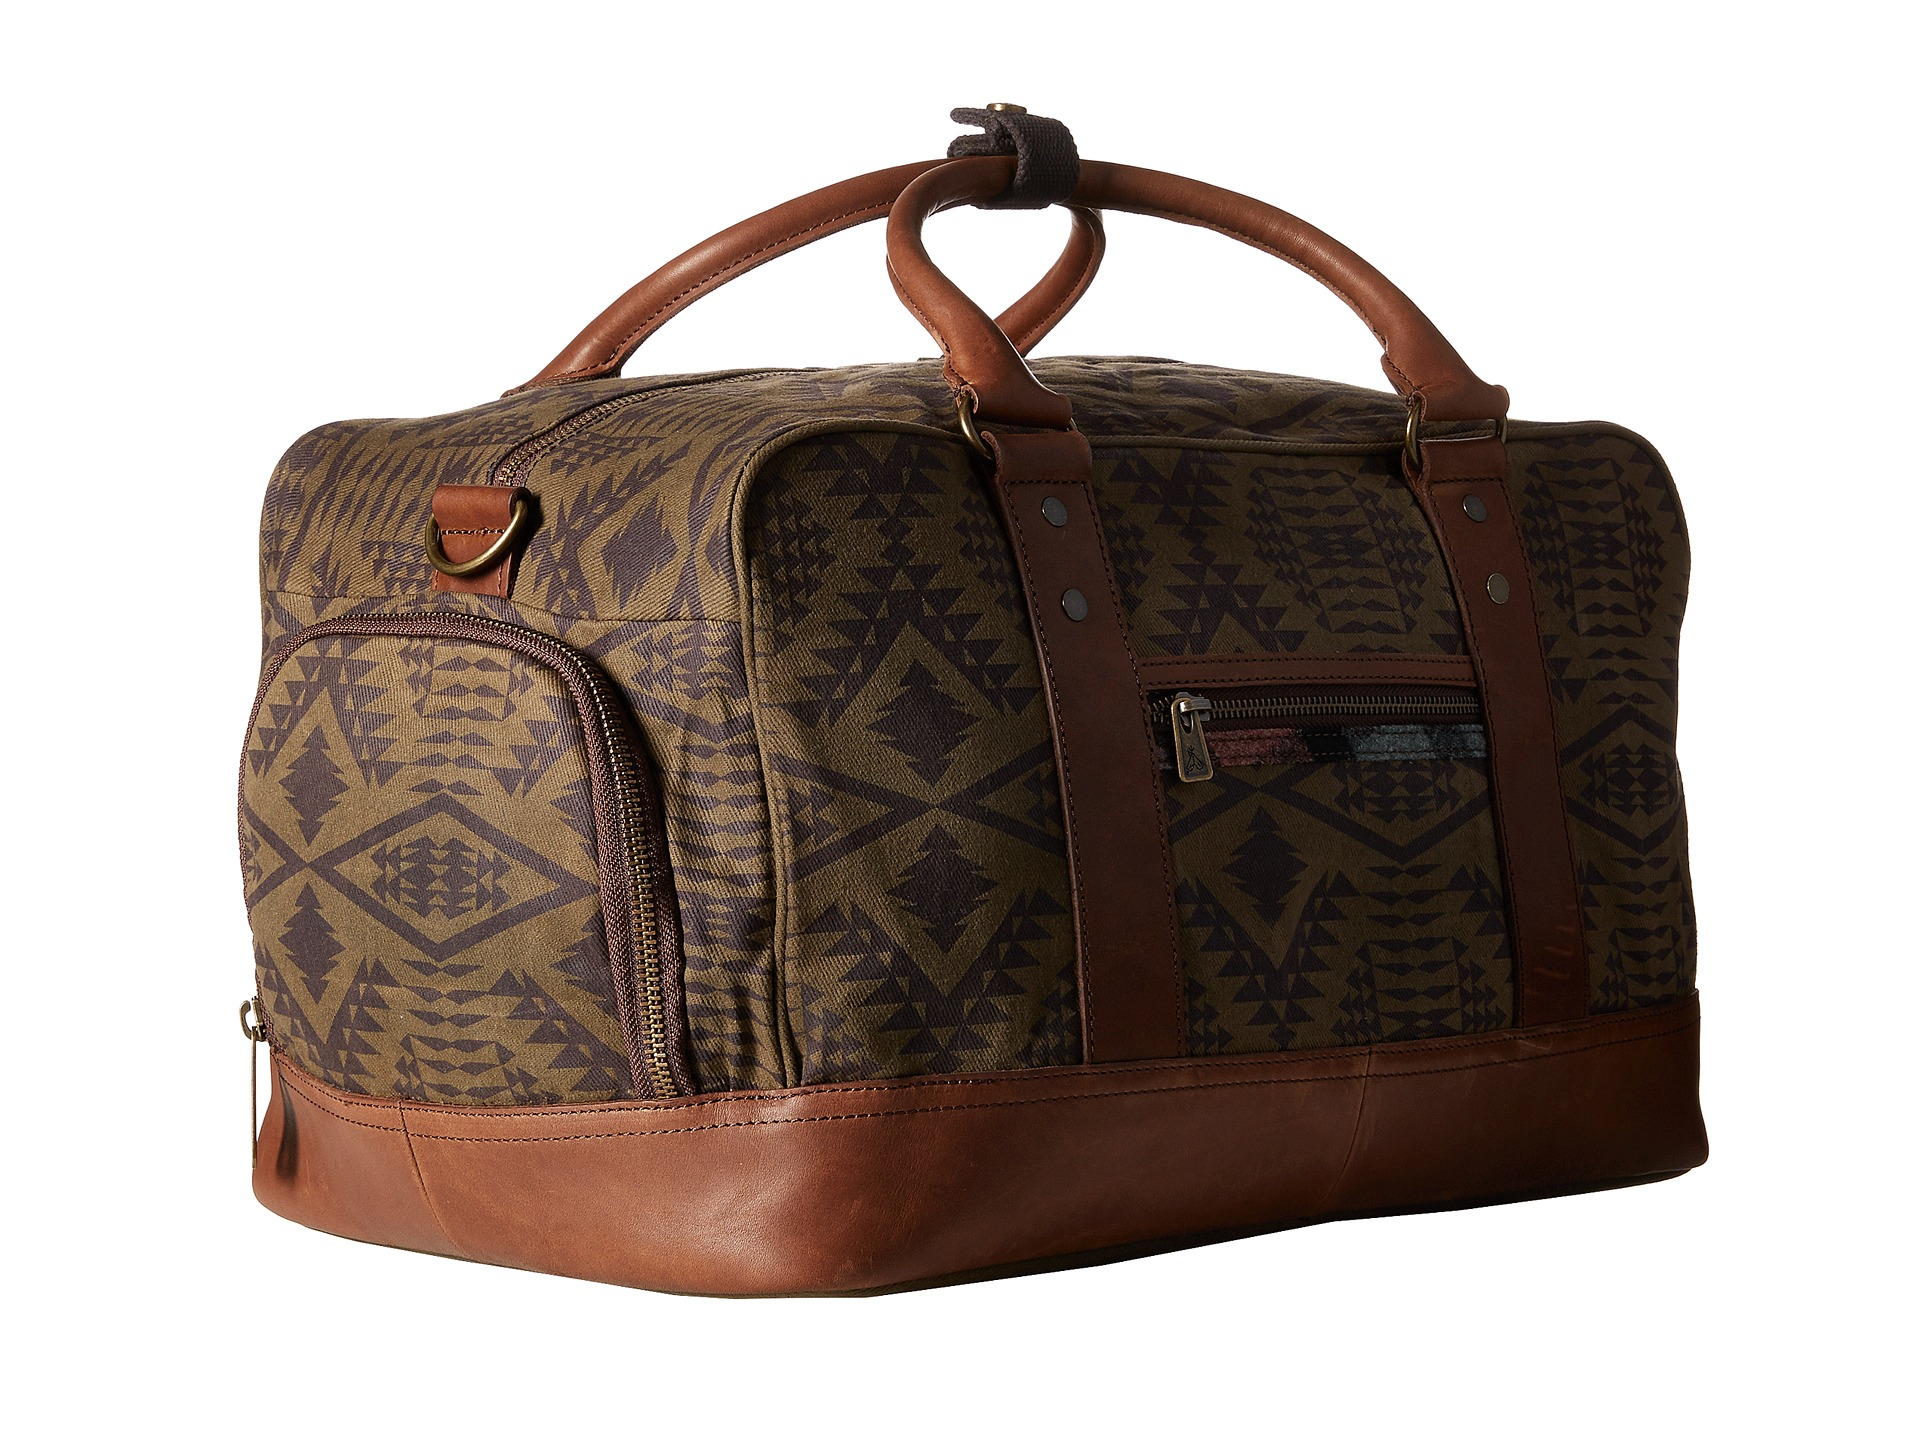 Lyst - Pendleton Carry-on Duffle Bag in Brown 659cf8f184